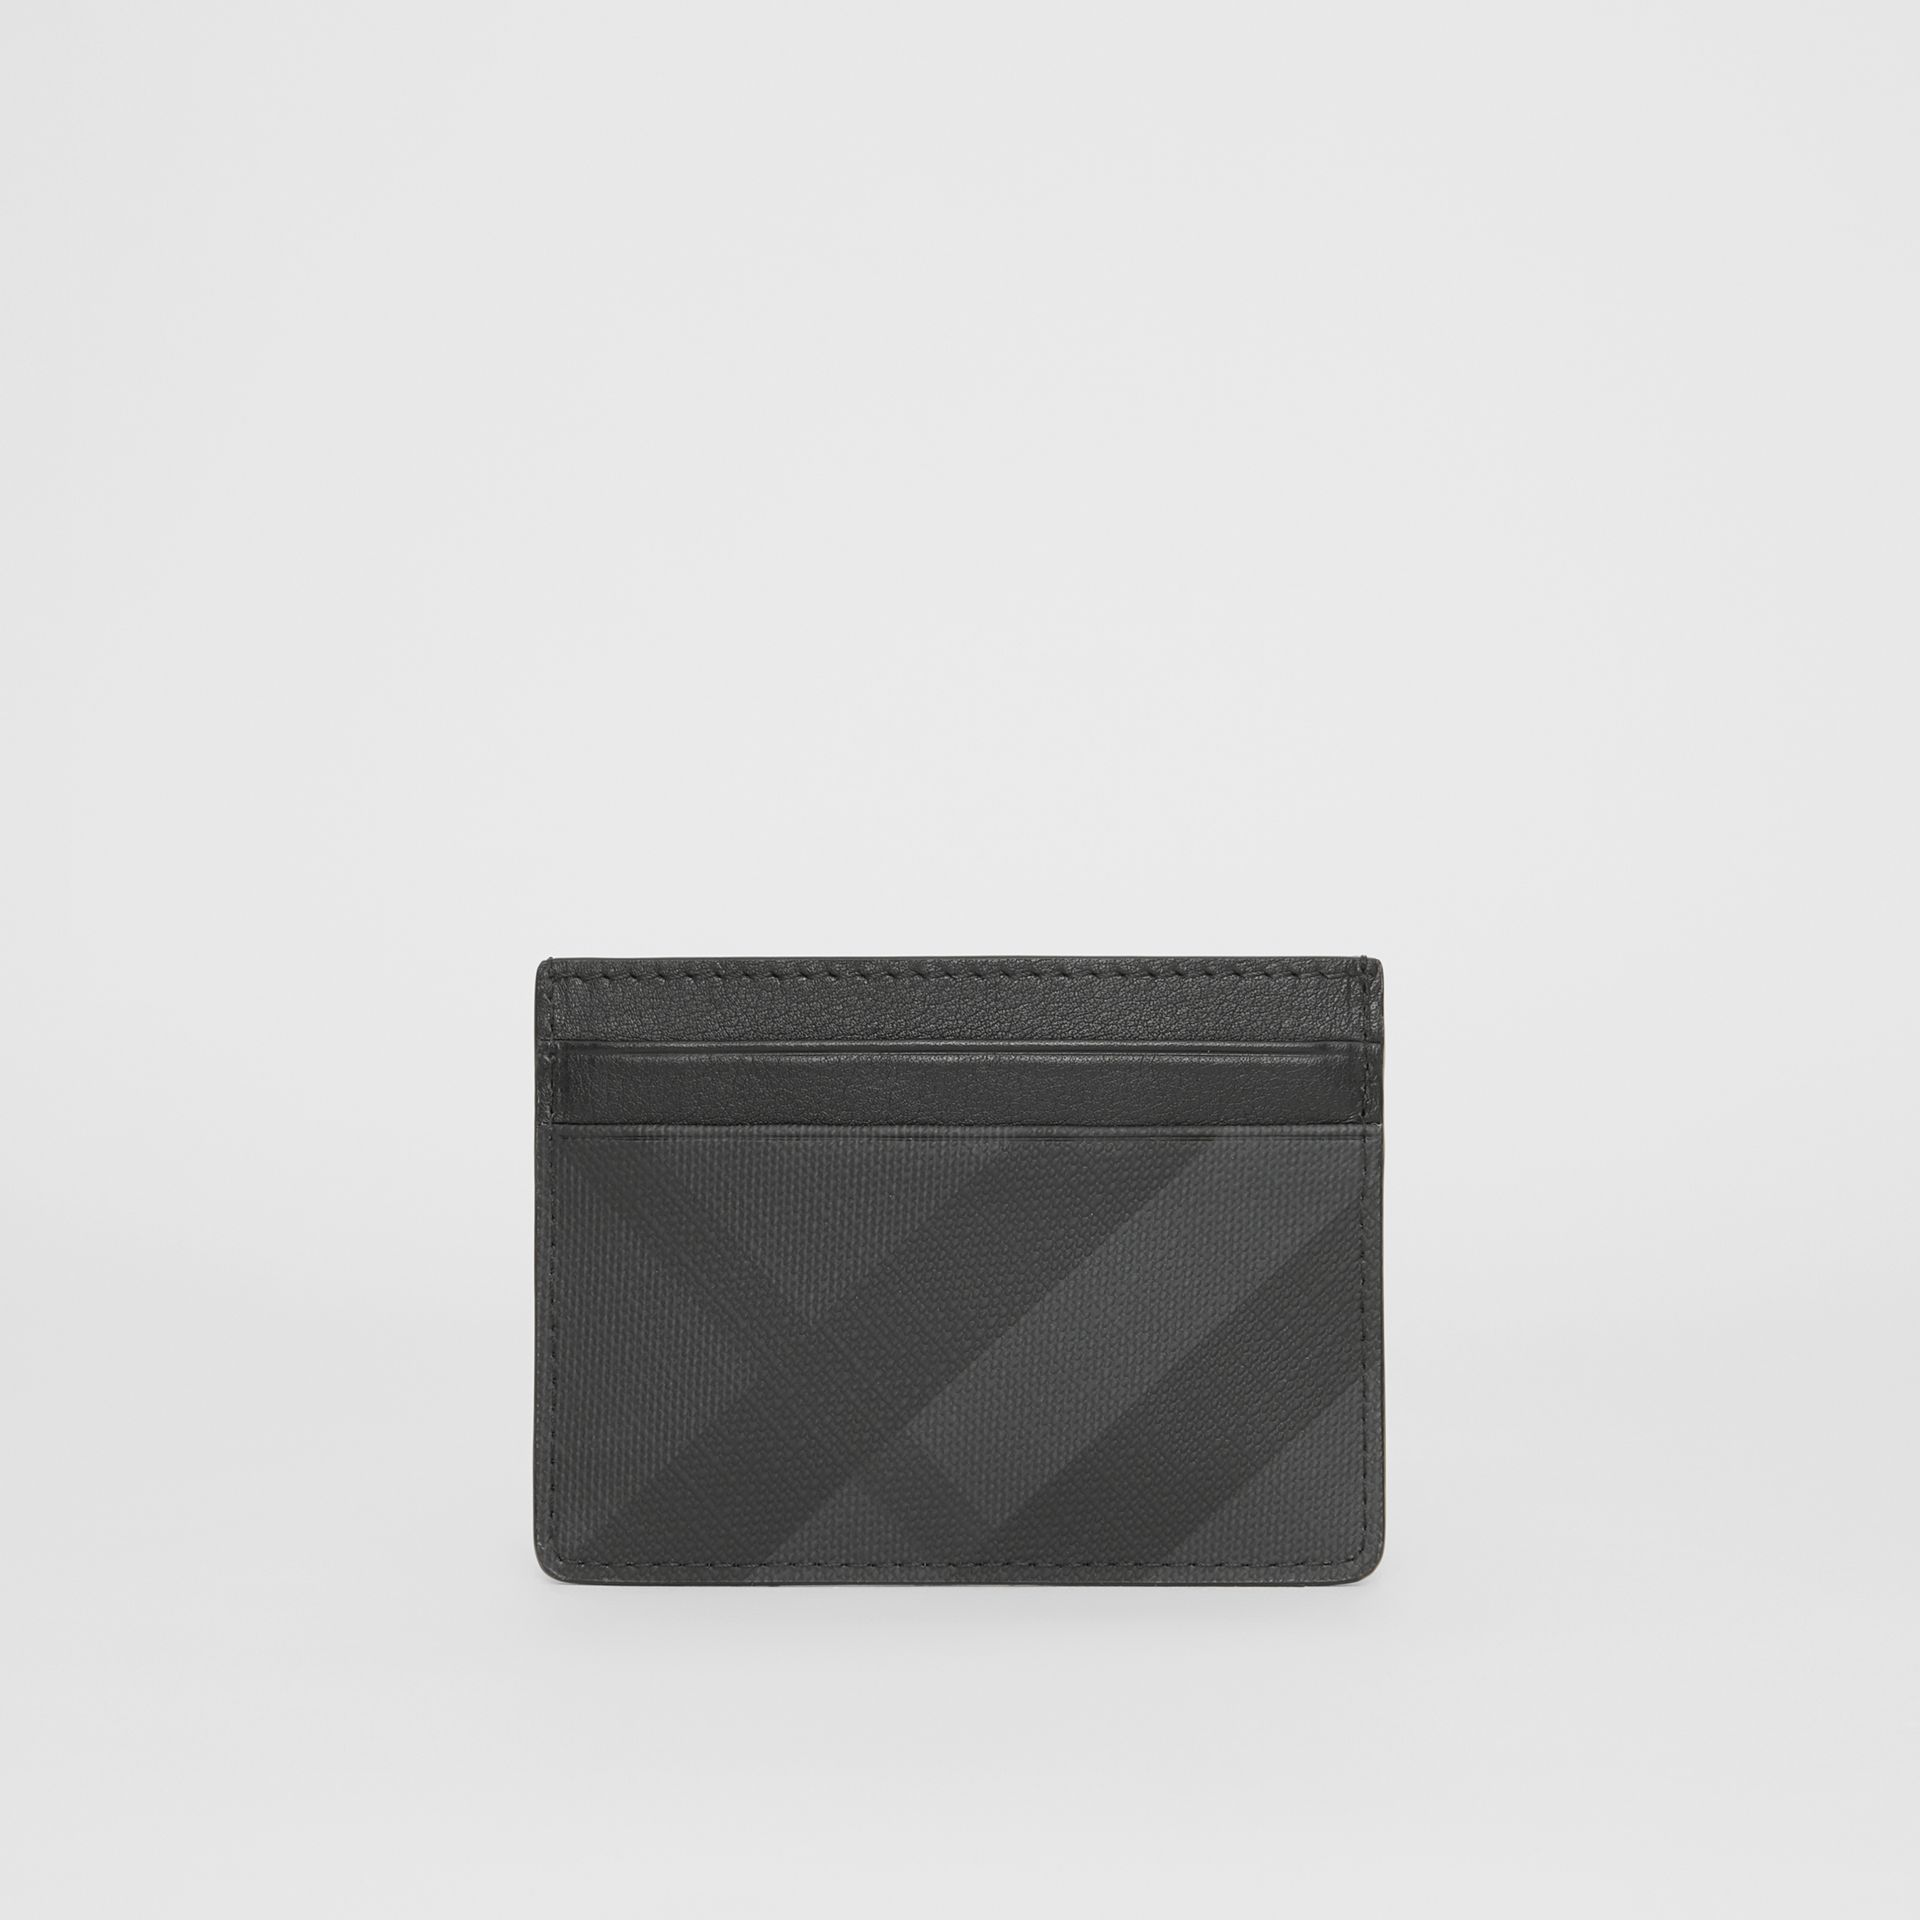 London Check and Leather Card Case in Dark Charcoal - Men | Burberry - gallery image 4